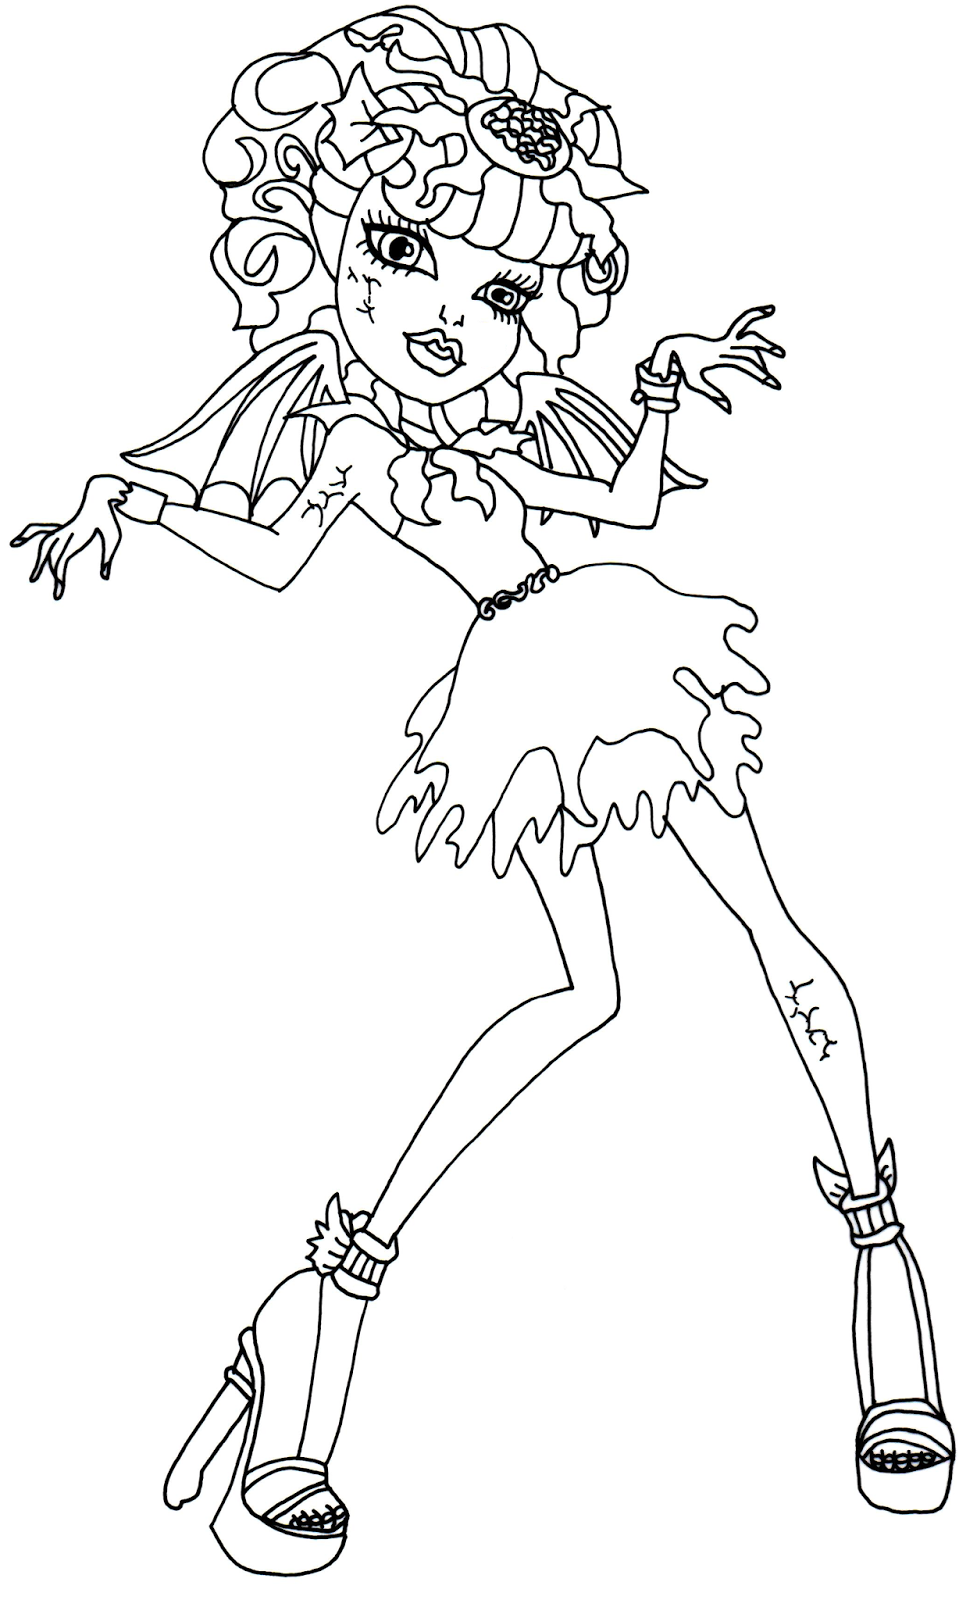 Zombie printable coloring pages coloring home for Free printable zombie coloring pages